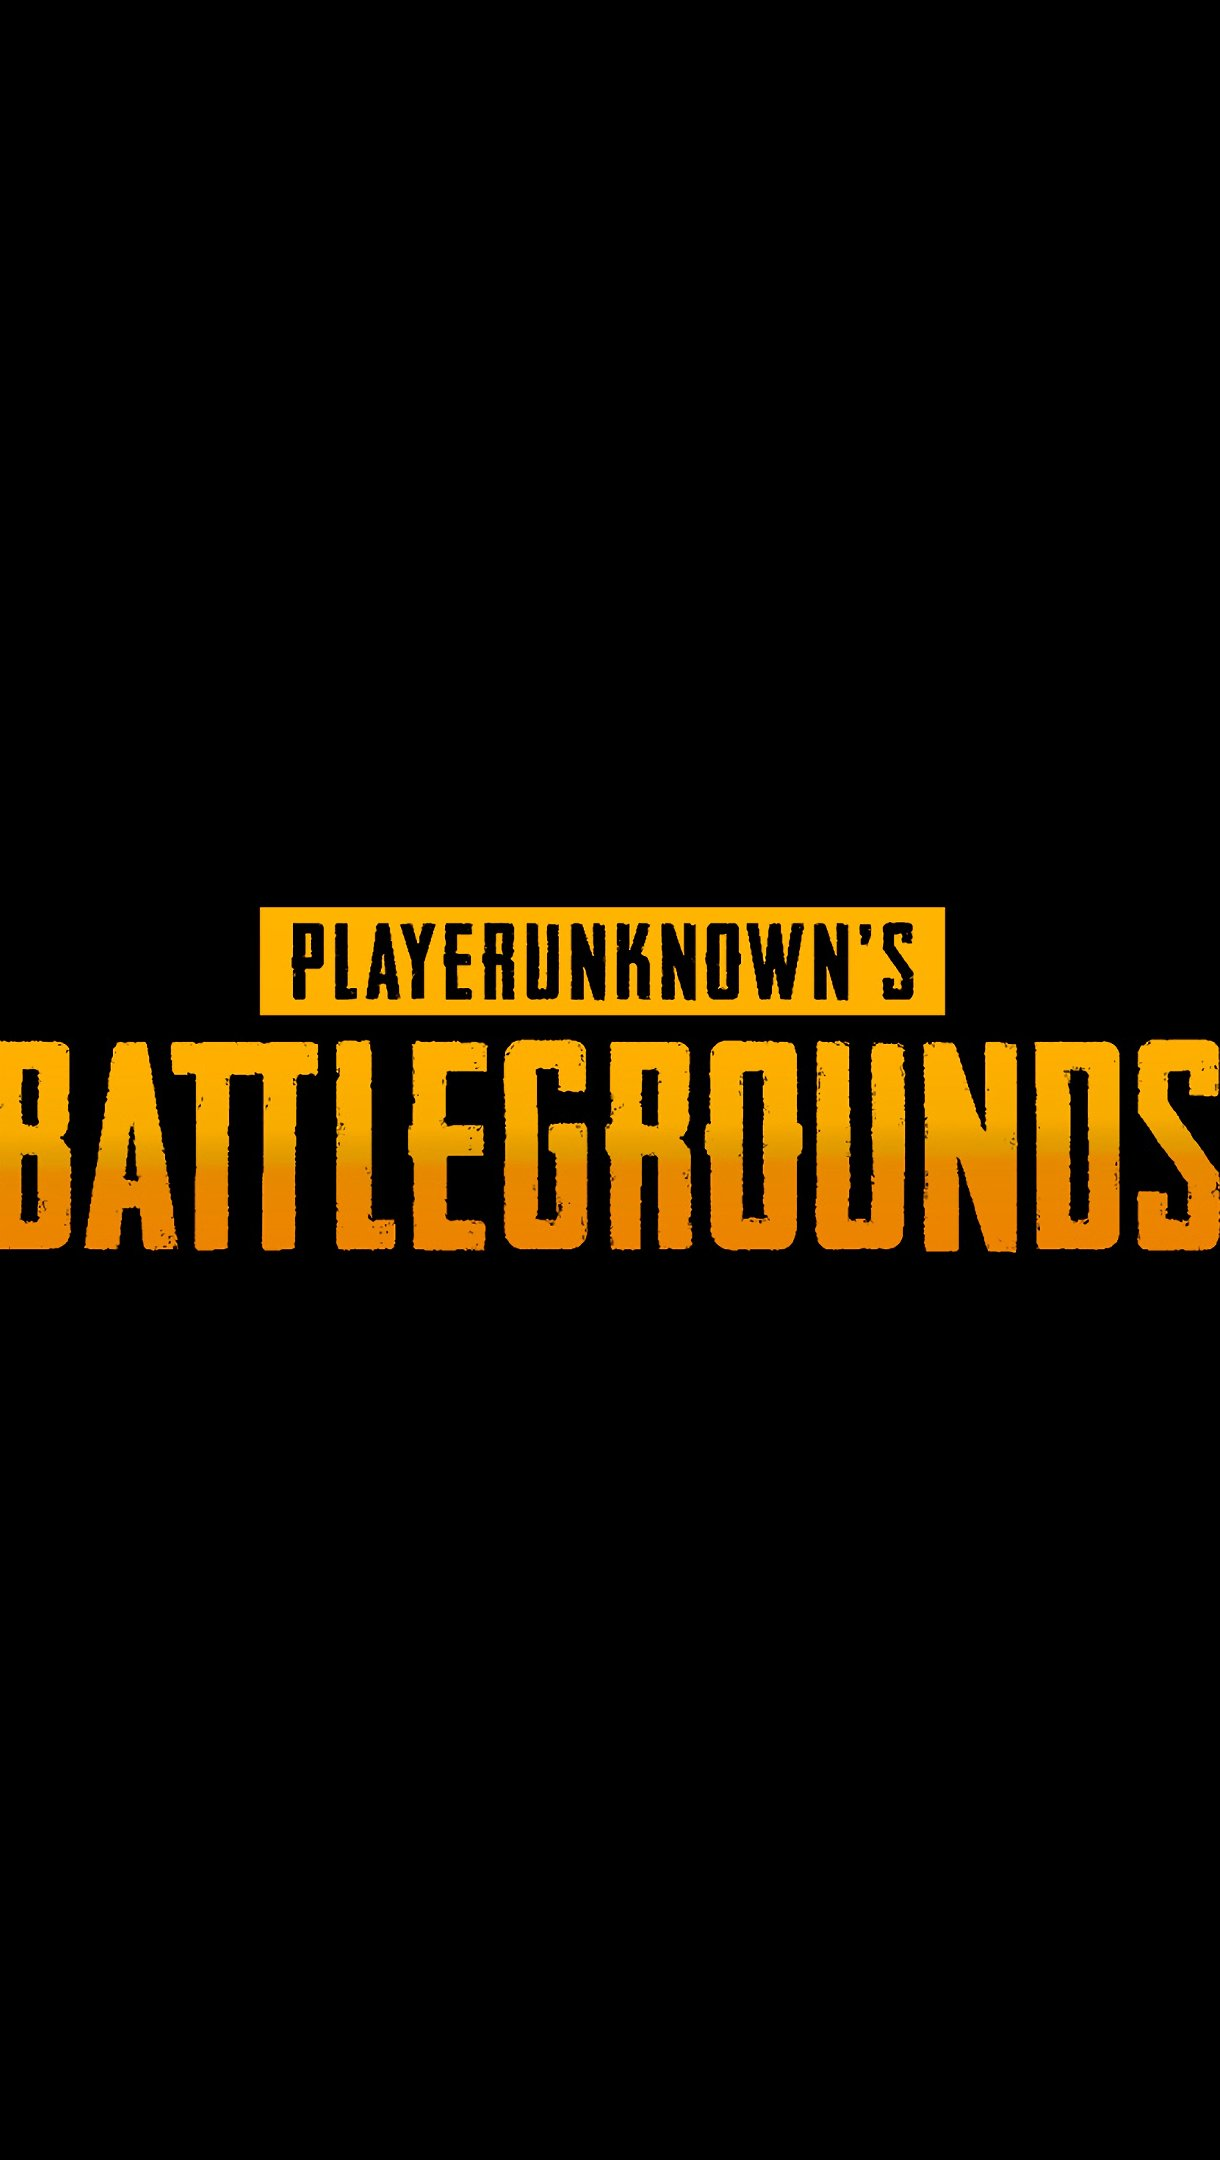 Fondos de pantalla PlayerUnknown's Battlegrounds Logo Vertical